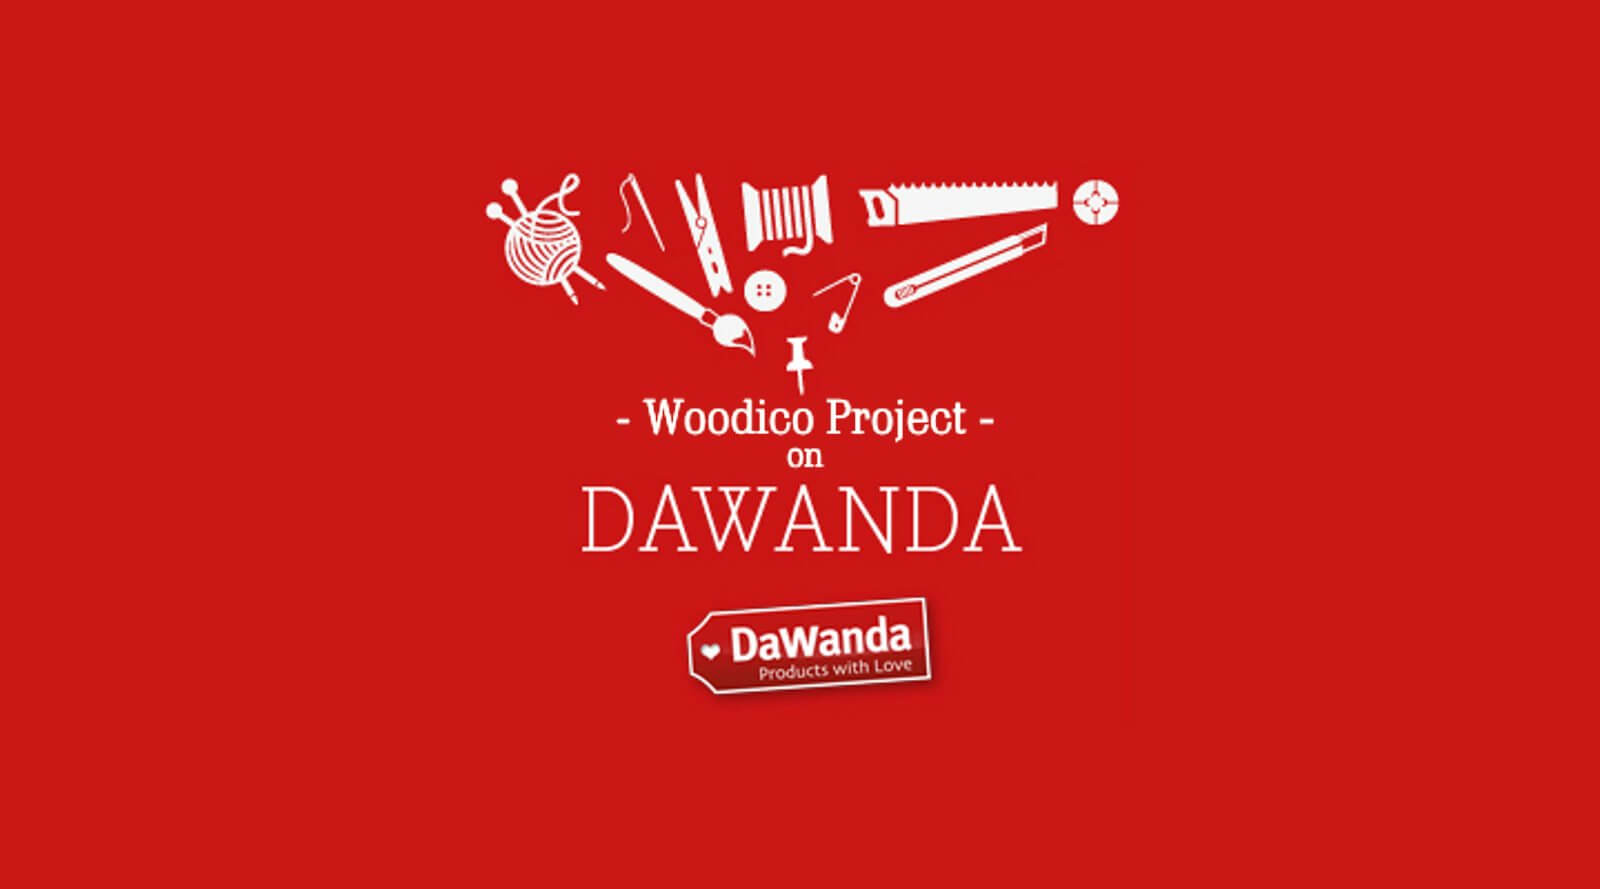 woodico.pro 53 - Woodico Project on Dawanda